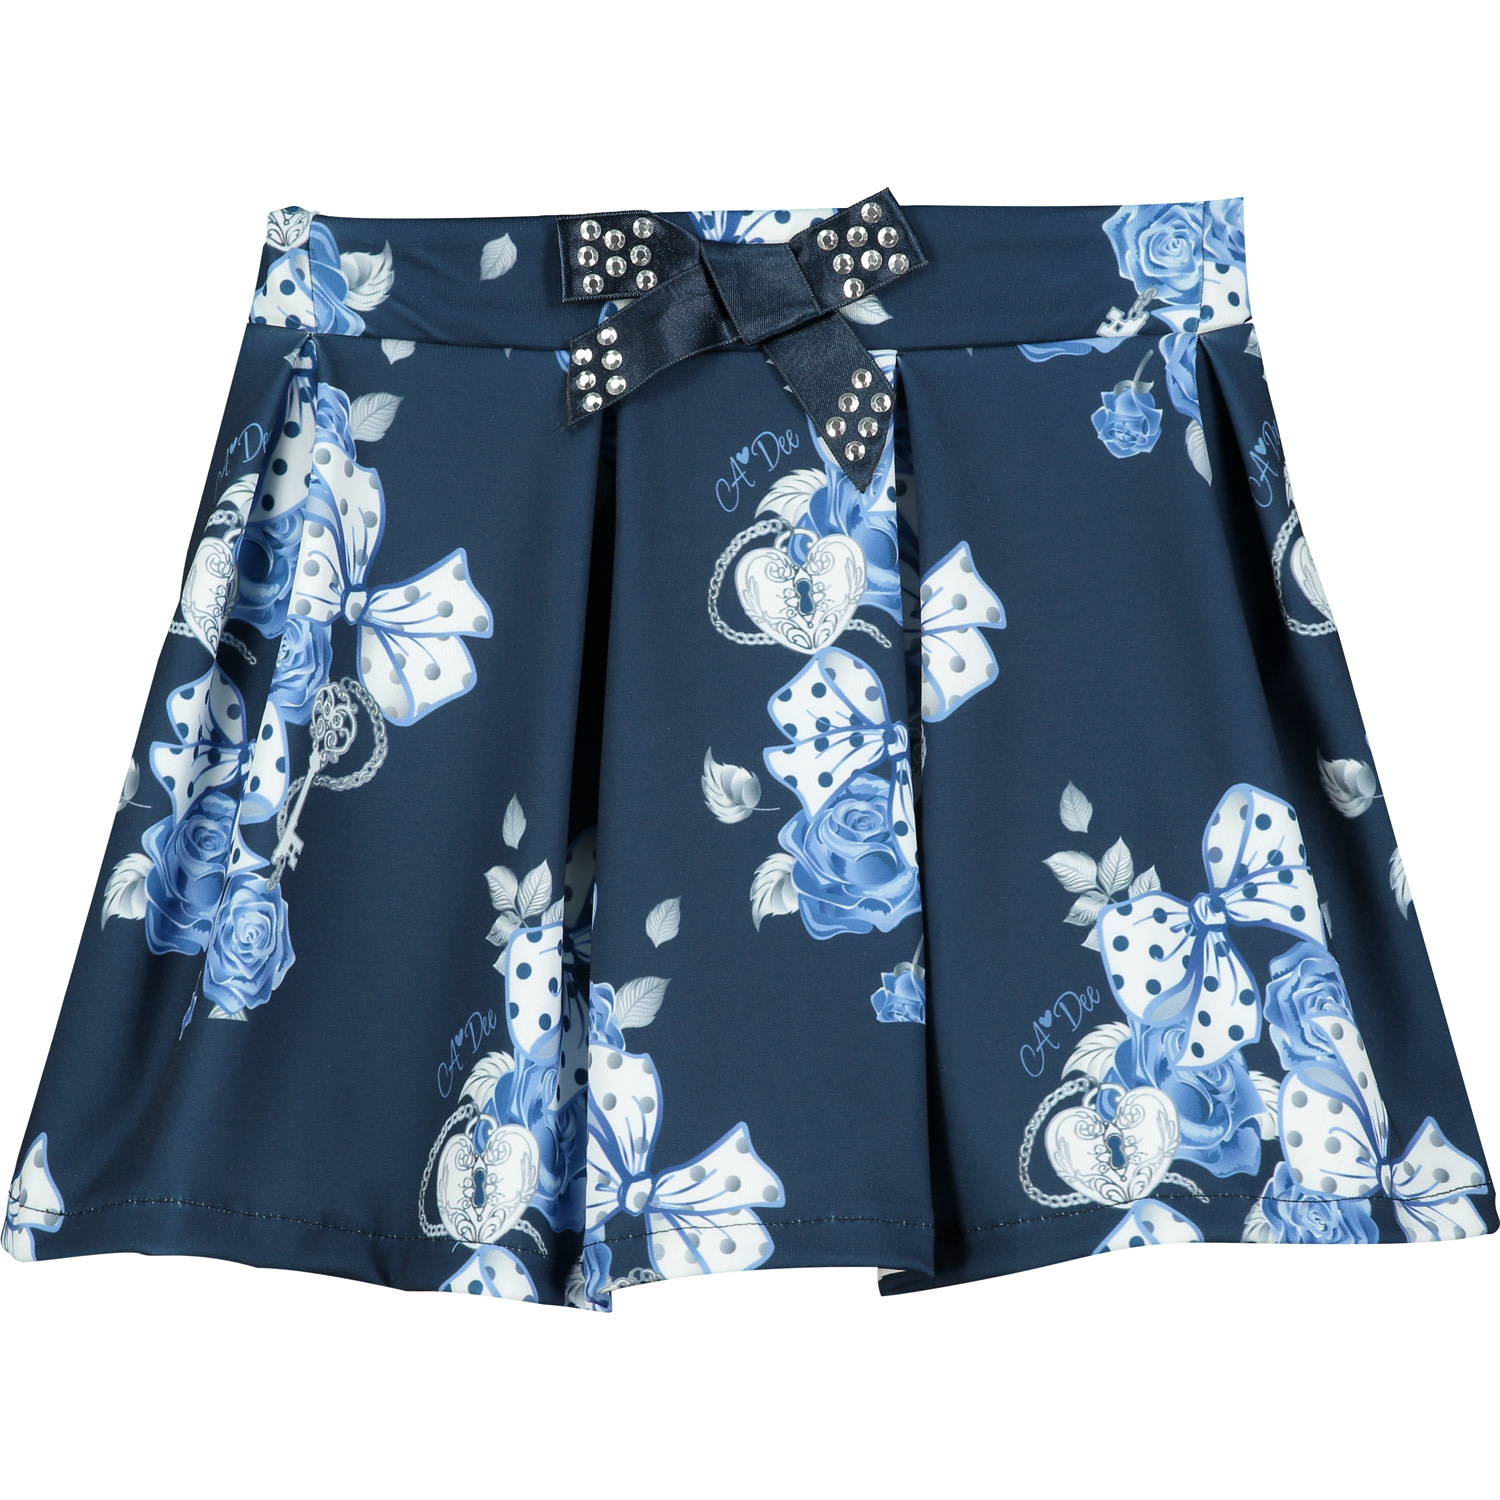 A Dee ADee Hennessy Navy Bows & Roses Skirt